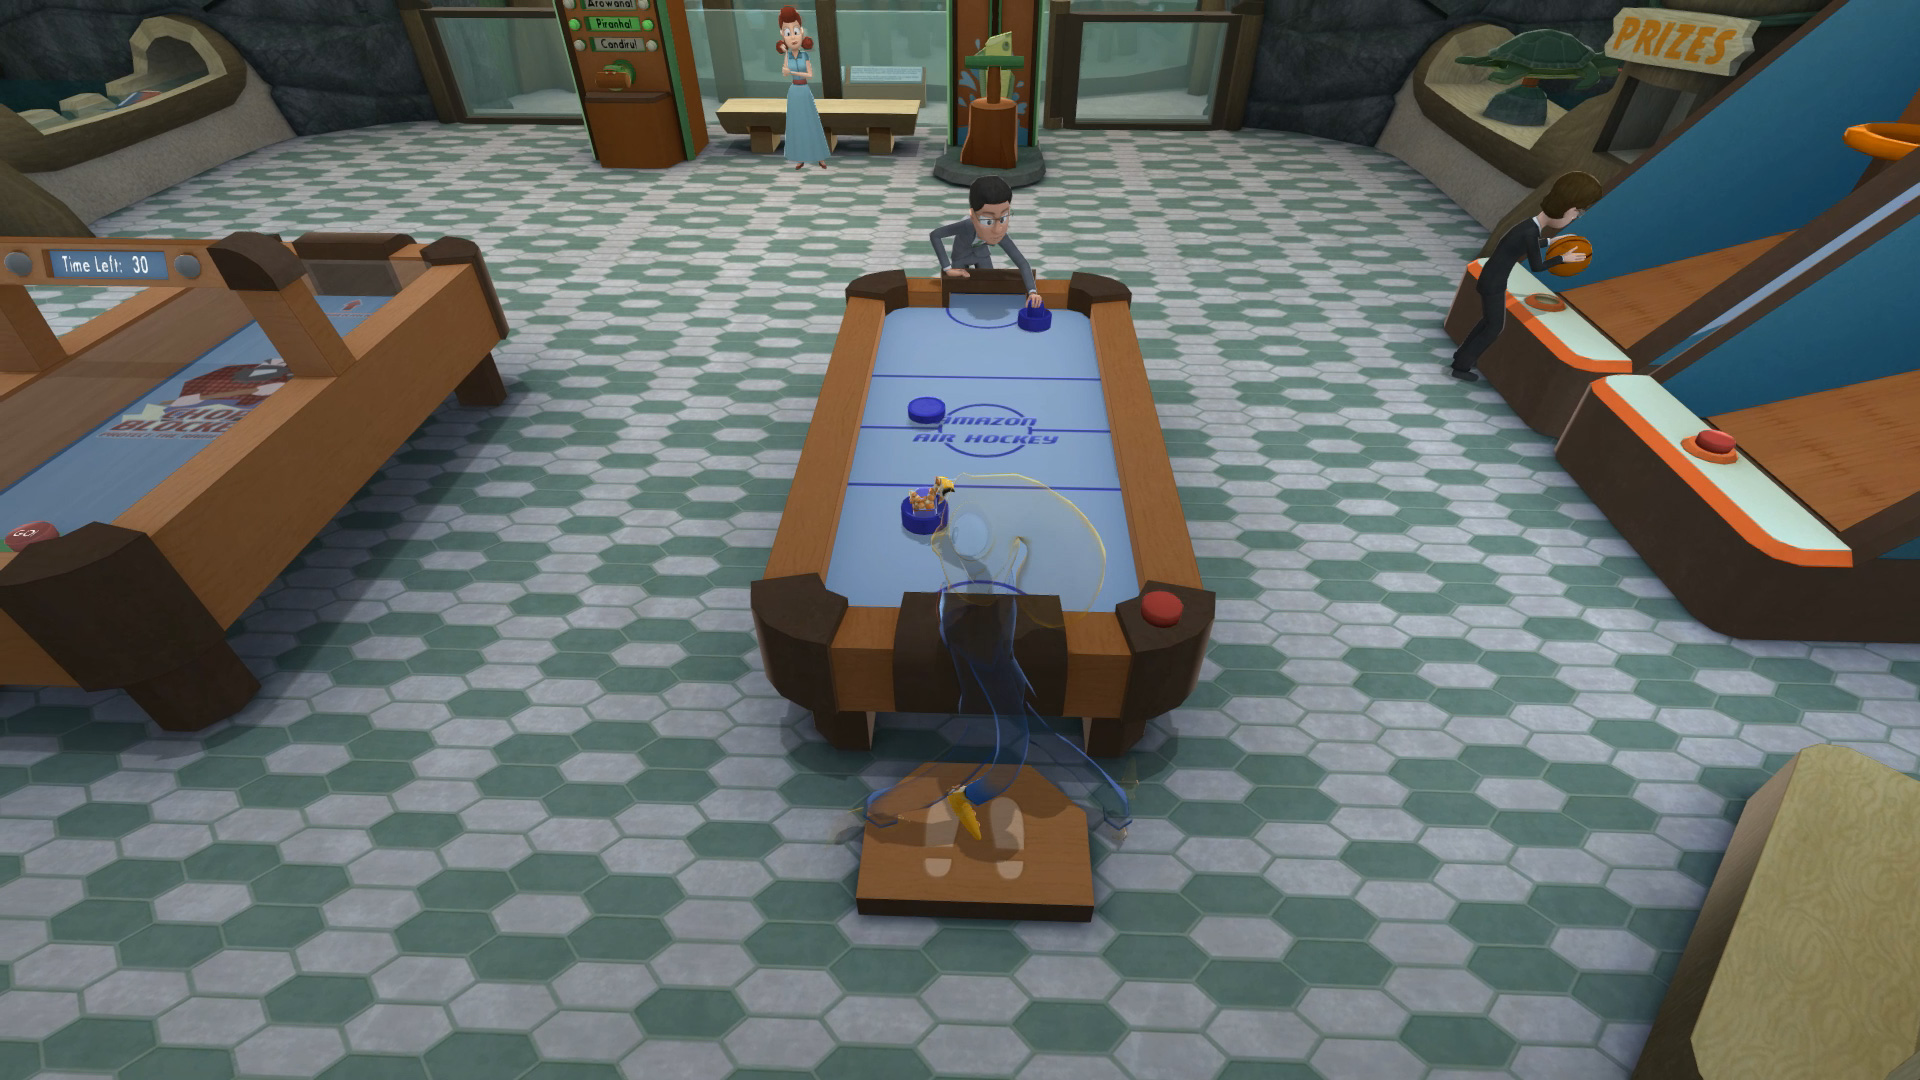 Octodad: Dadliest Catch review: father knows best